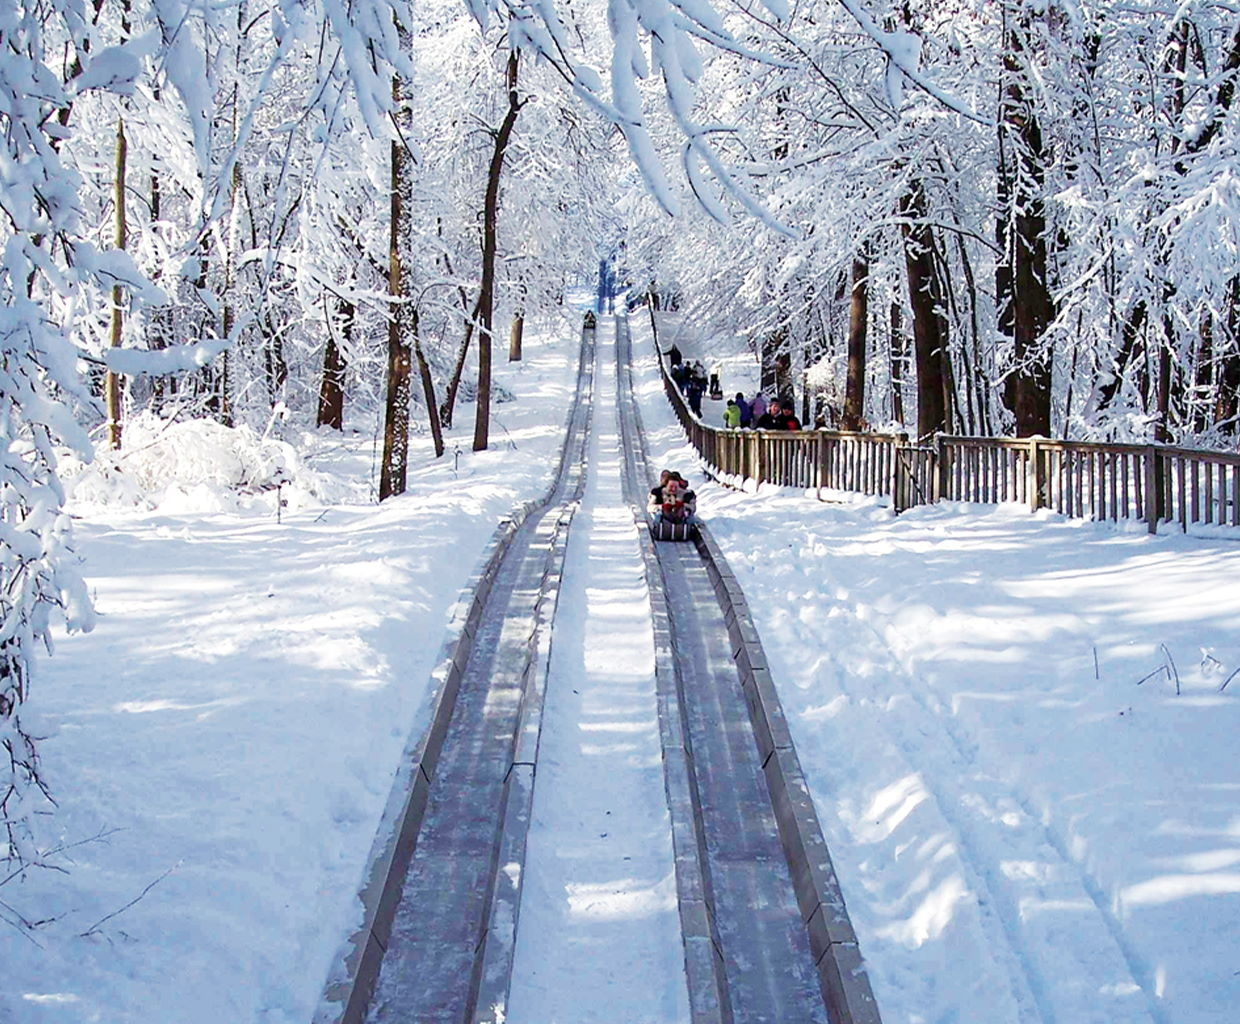 The toboggan run at Pokagon State Park